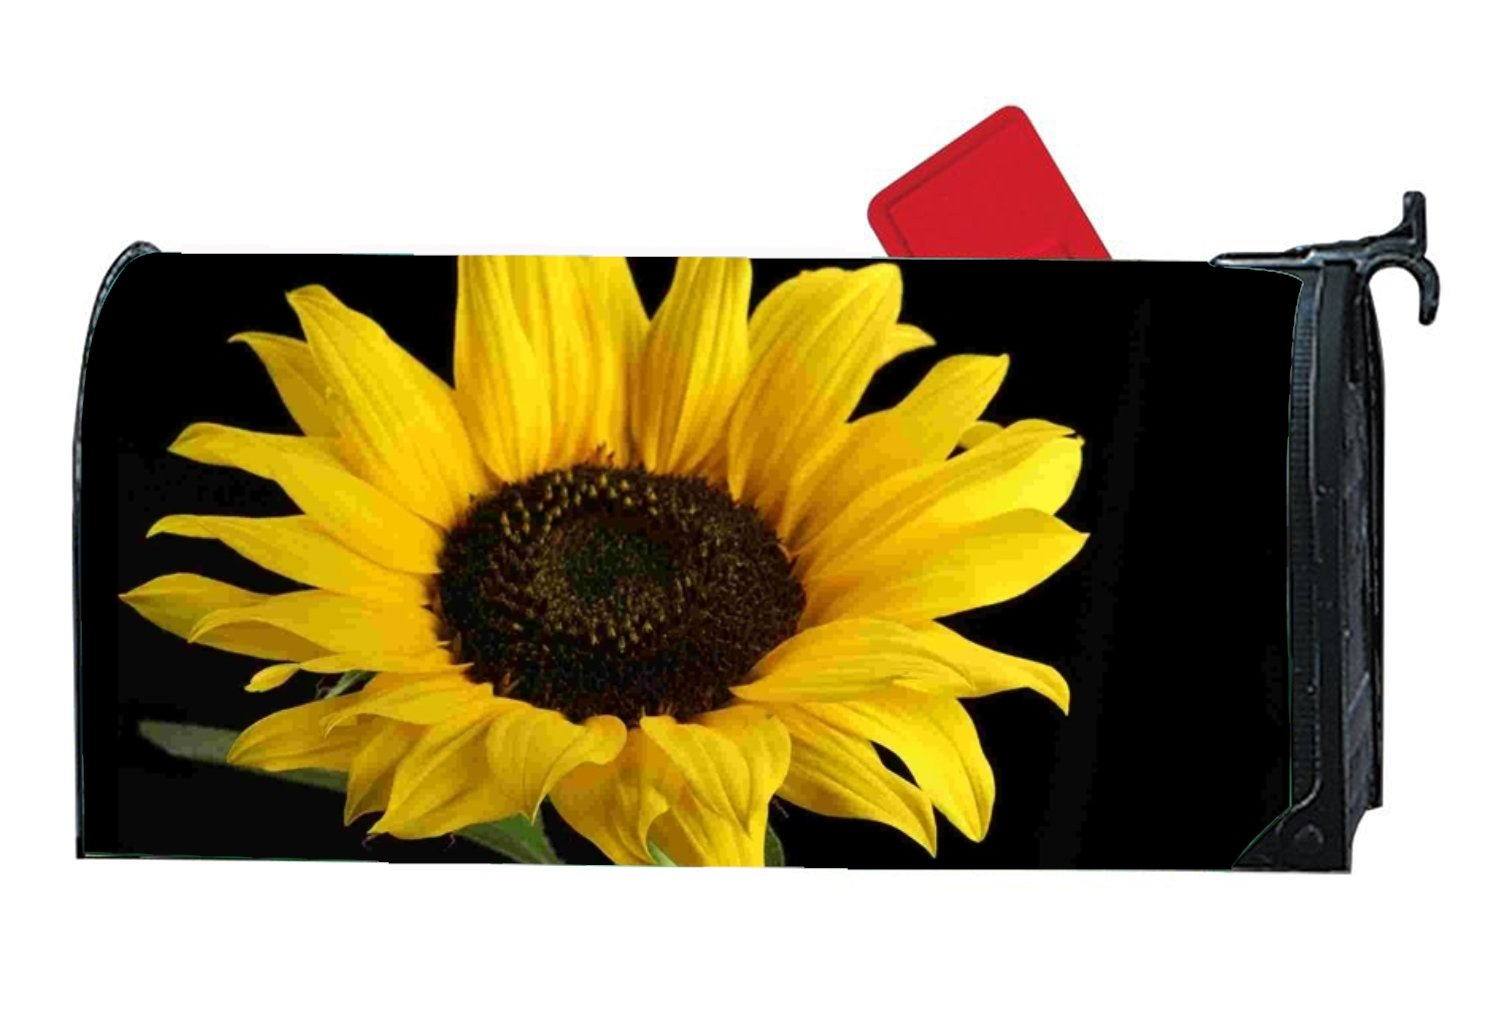 KSLIDS Personalized Mailbox Makover Cover Beautiful Sunflowers Mailbox Makeover Home,Outdoor,Yard Magnetic by KSLIDS